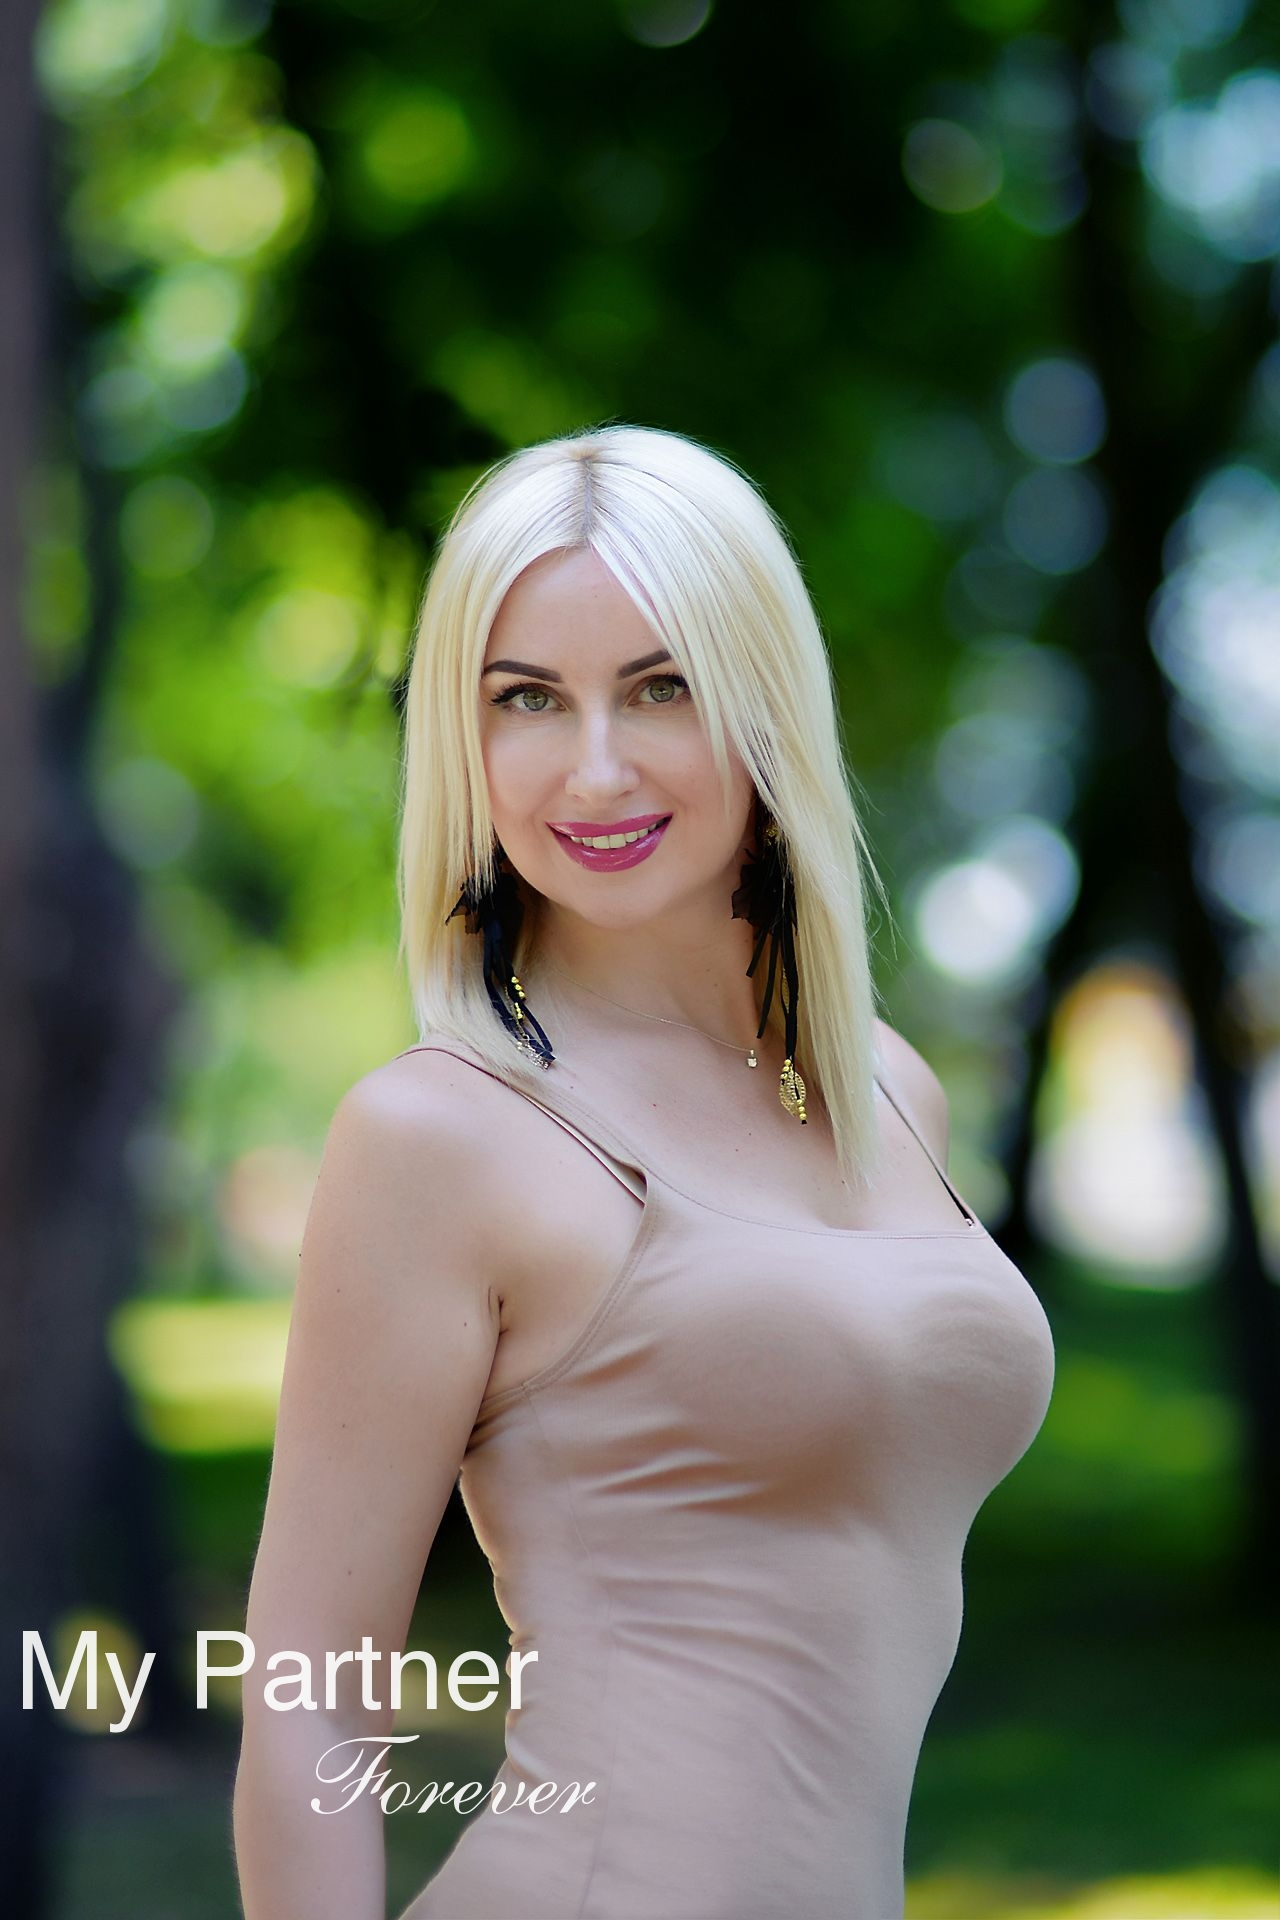 Dating Site to Meet Pretty Ukrainian Lady Marina from Kharkov, Ukraine